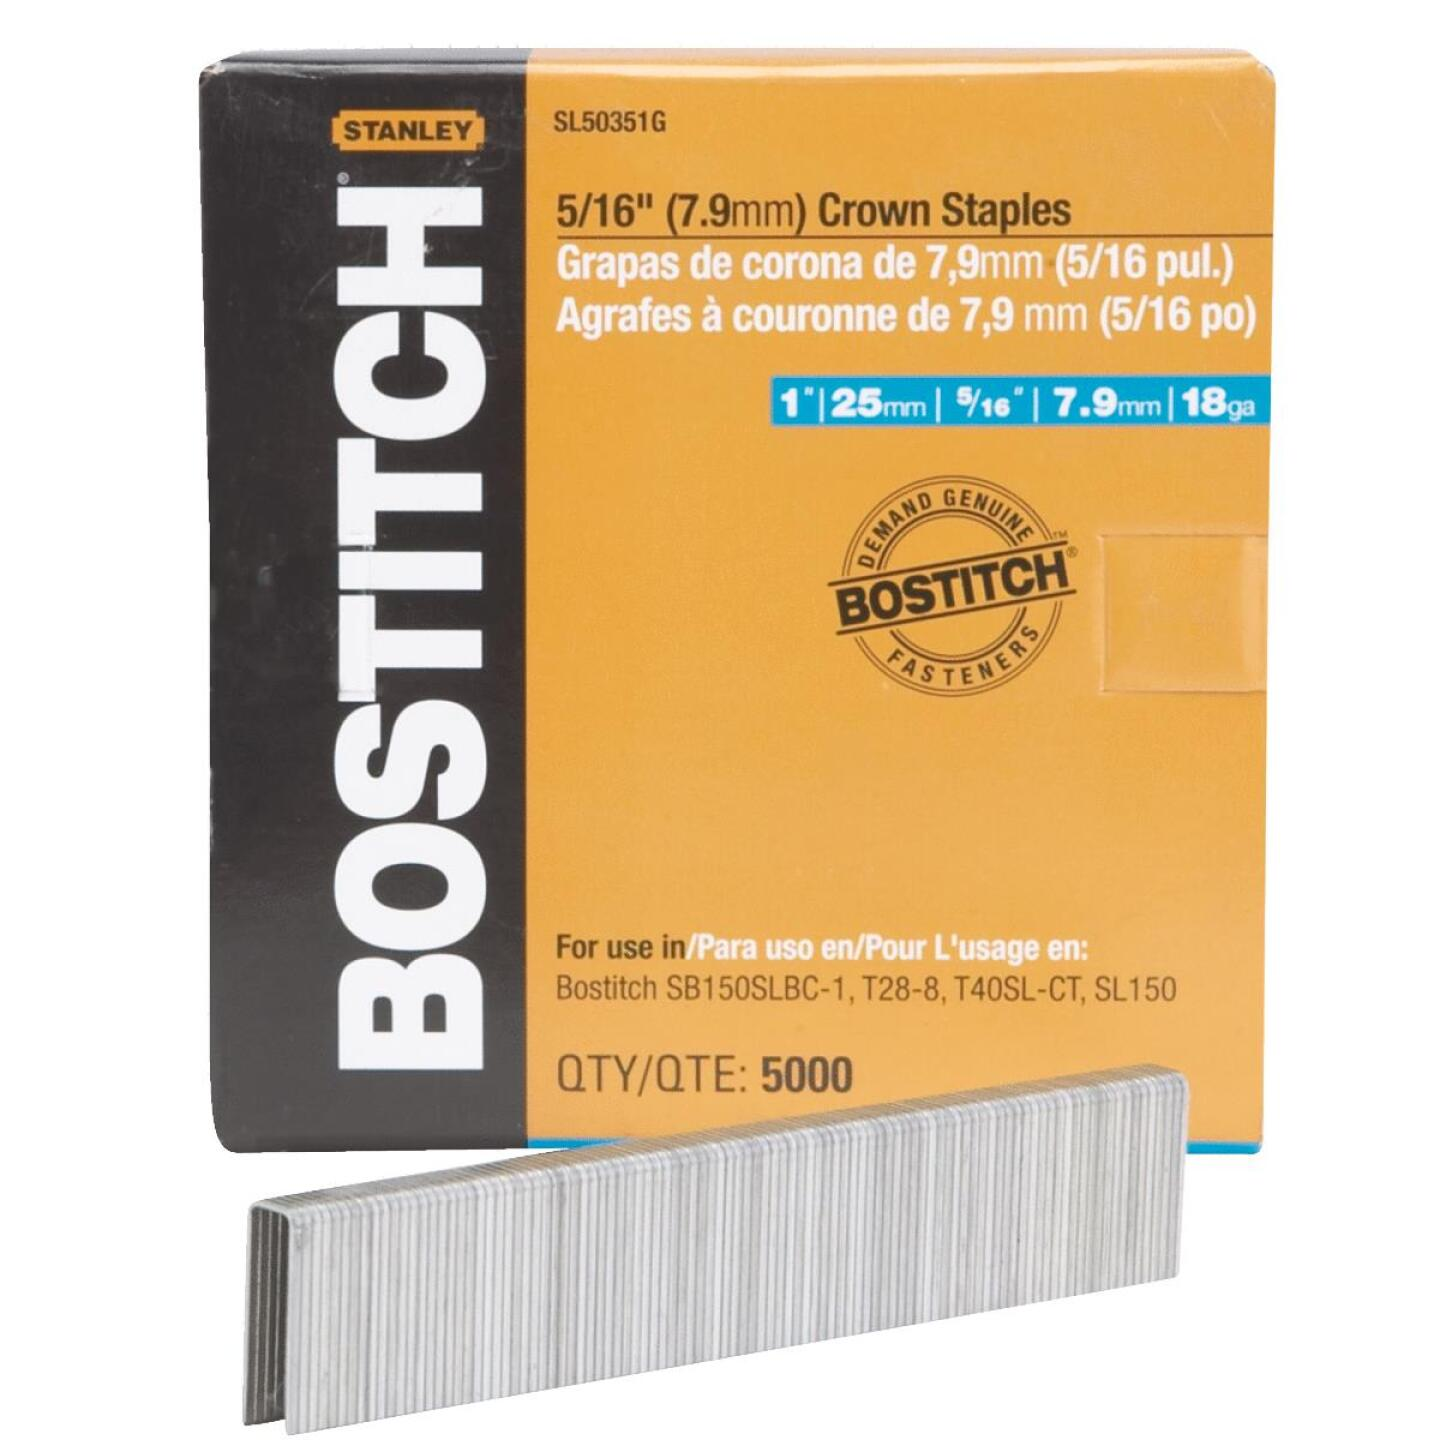 Bostitch 18-Gauge 5/16 In. x 1 In. Pneumatic Cap Staples (5000 Ct.) Image 1